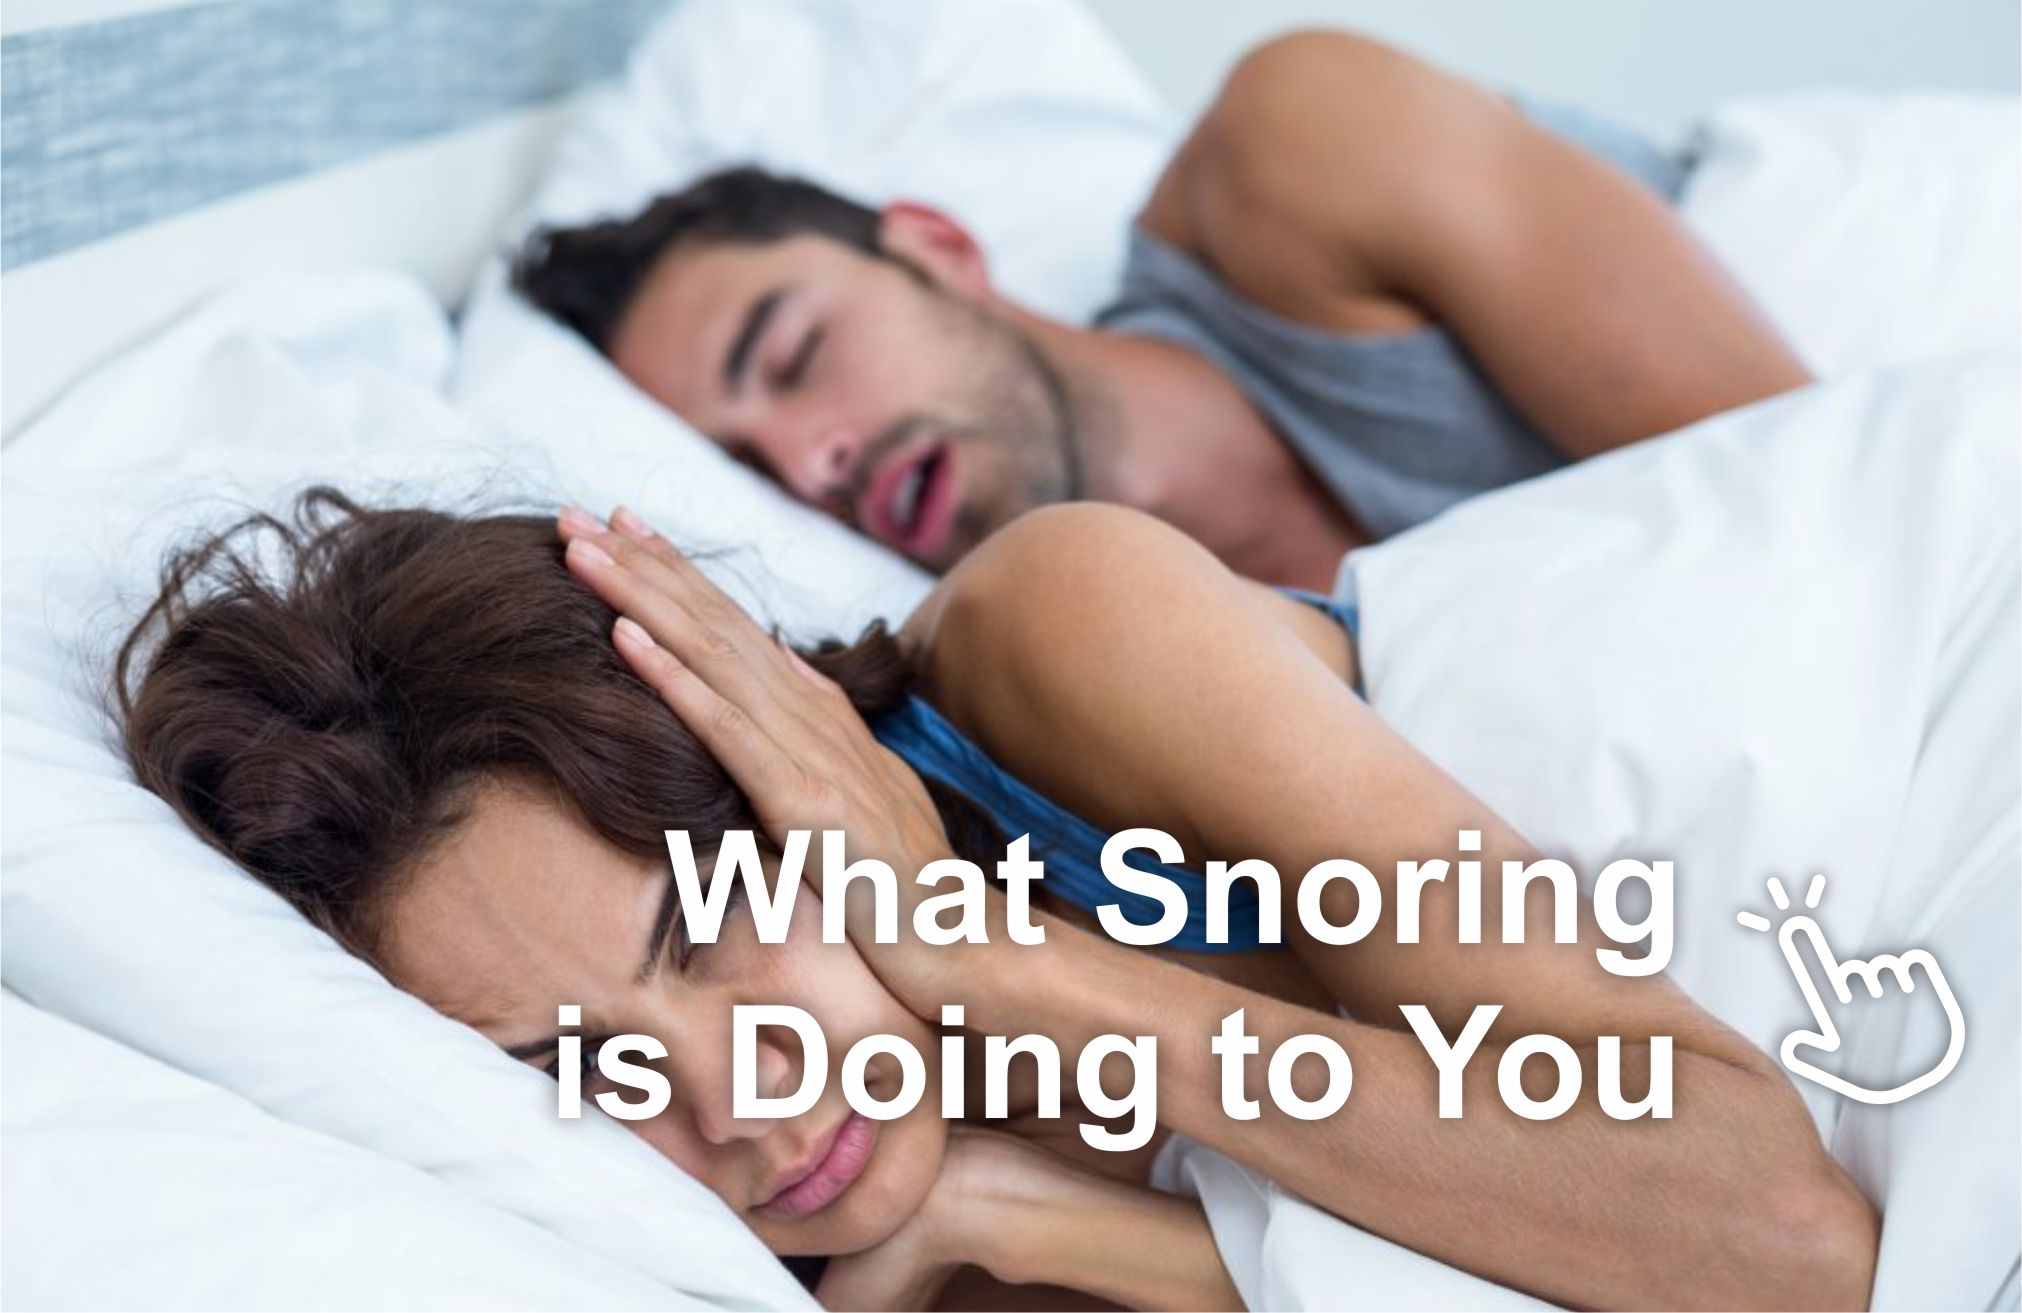 What Snoring is Doing to You